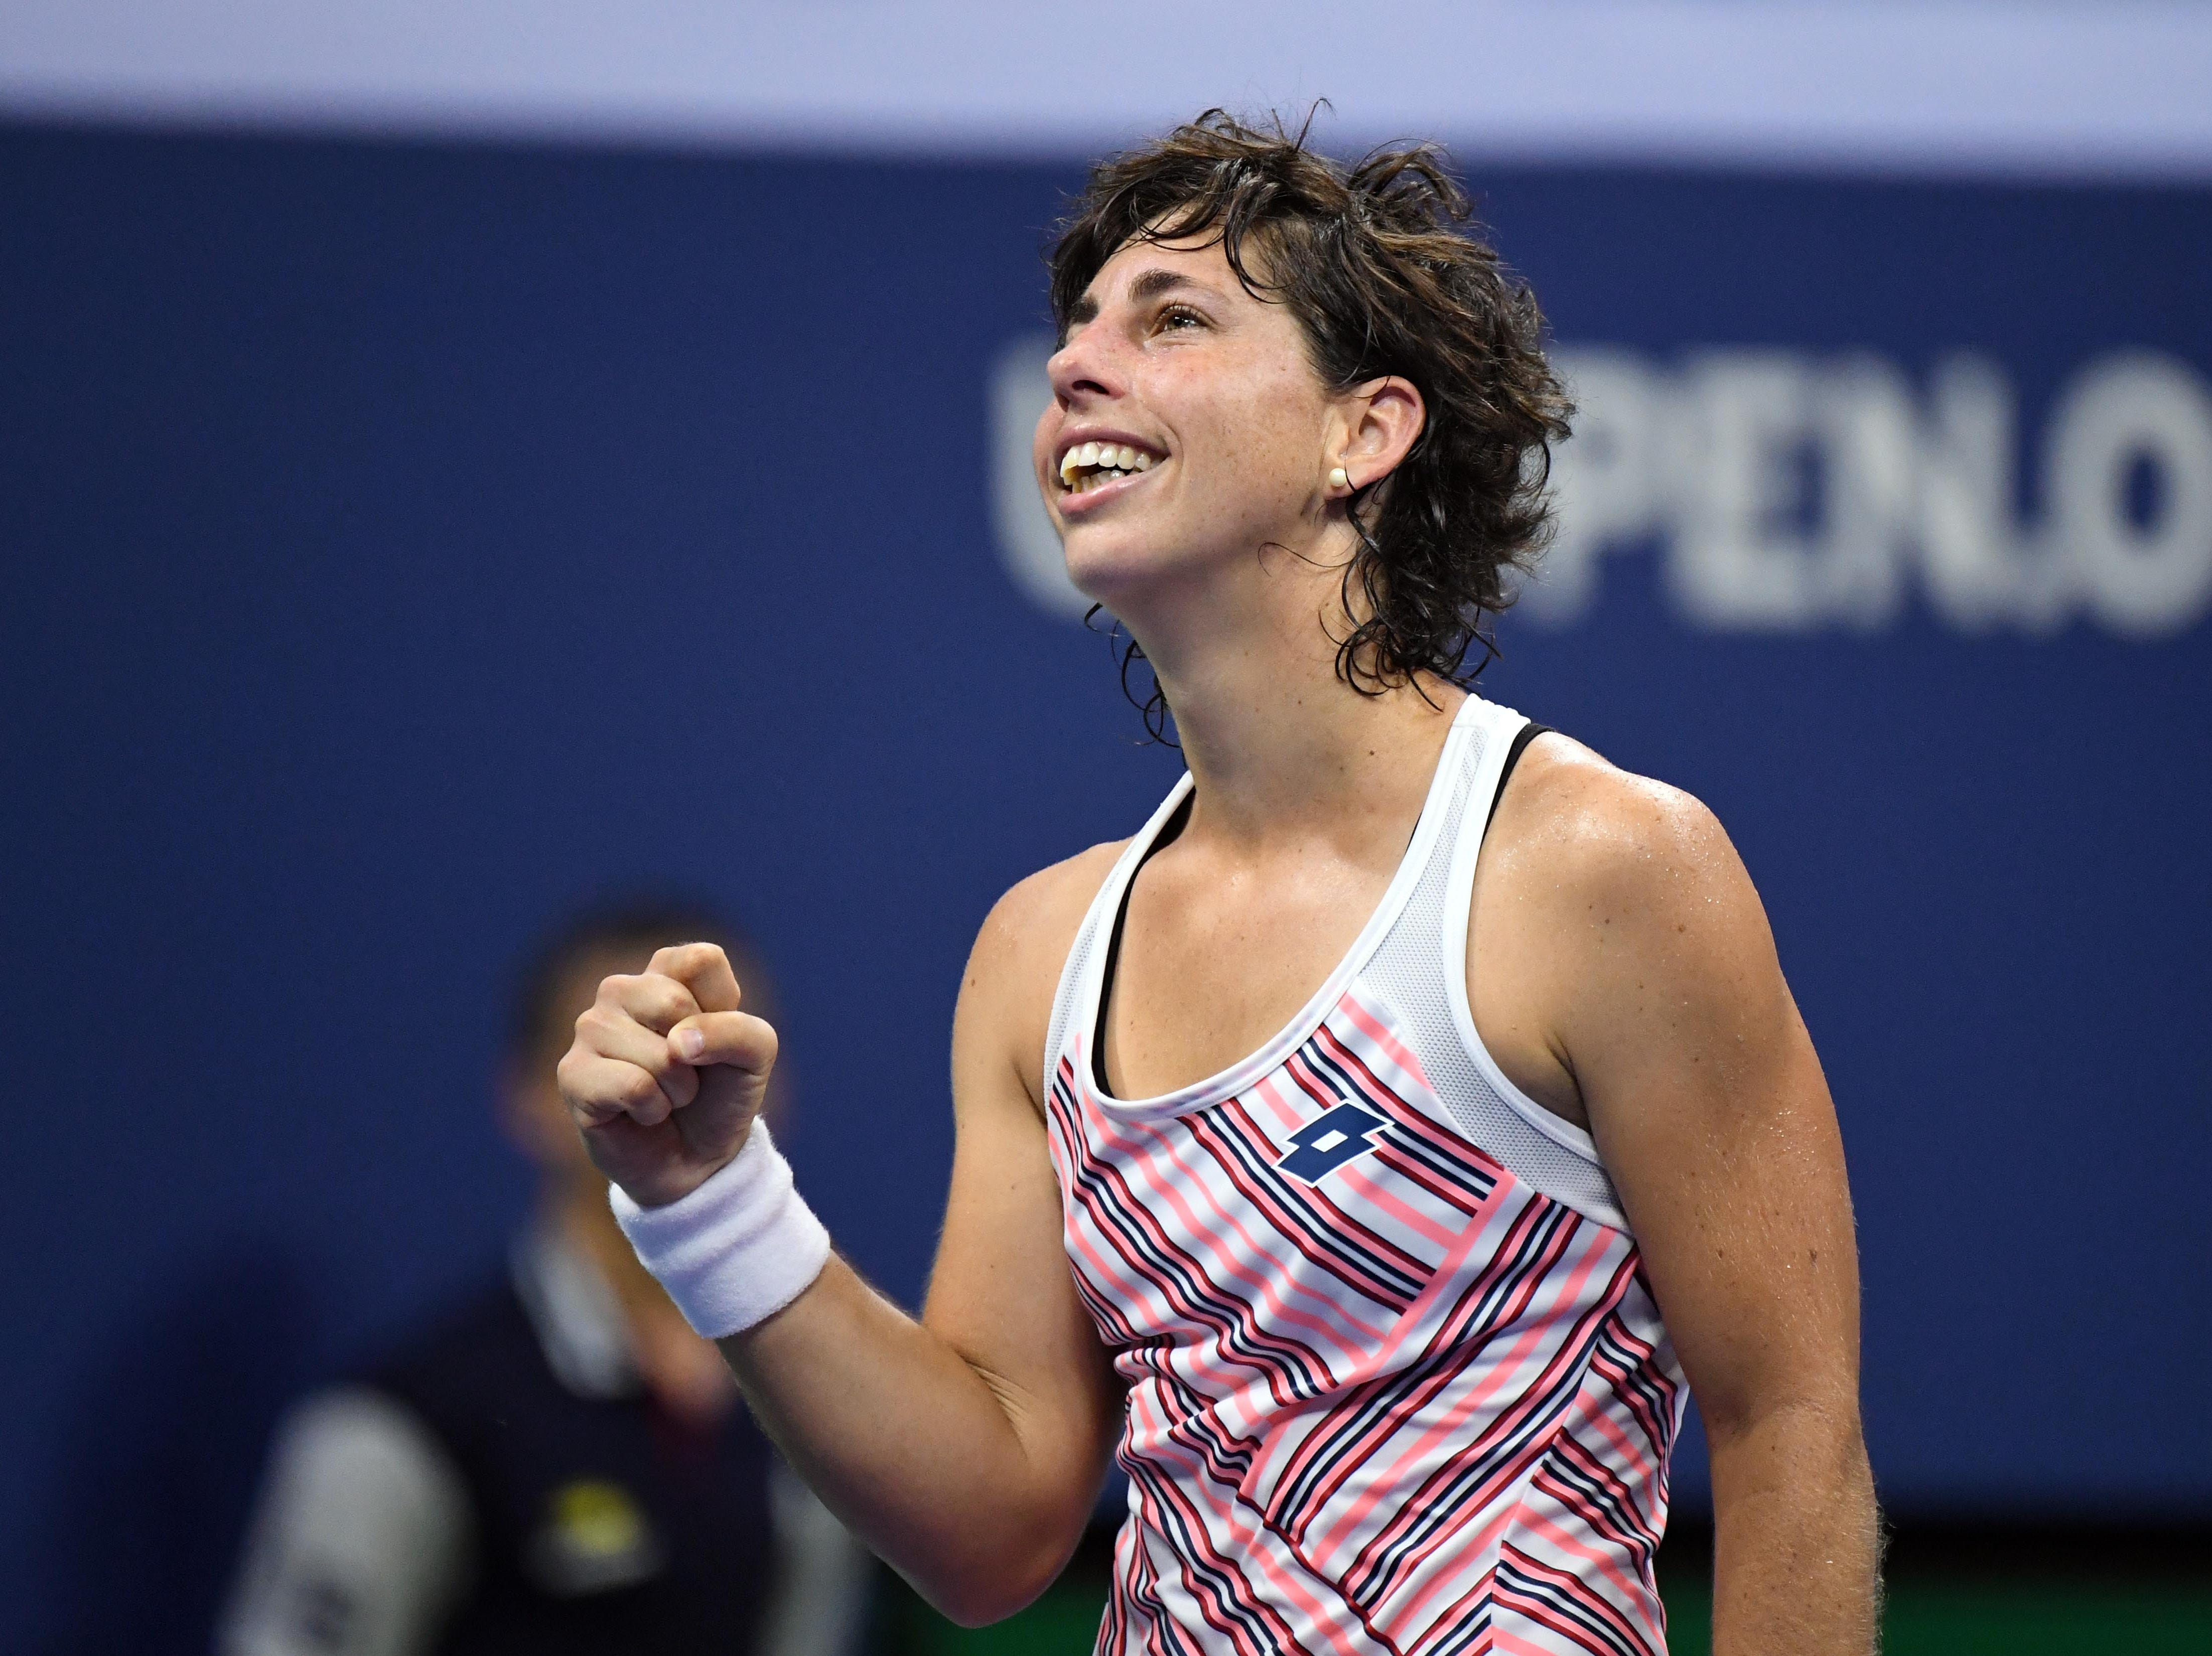 Carla Suarez Navarro celebrates match point against Maria Sharapova.